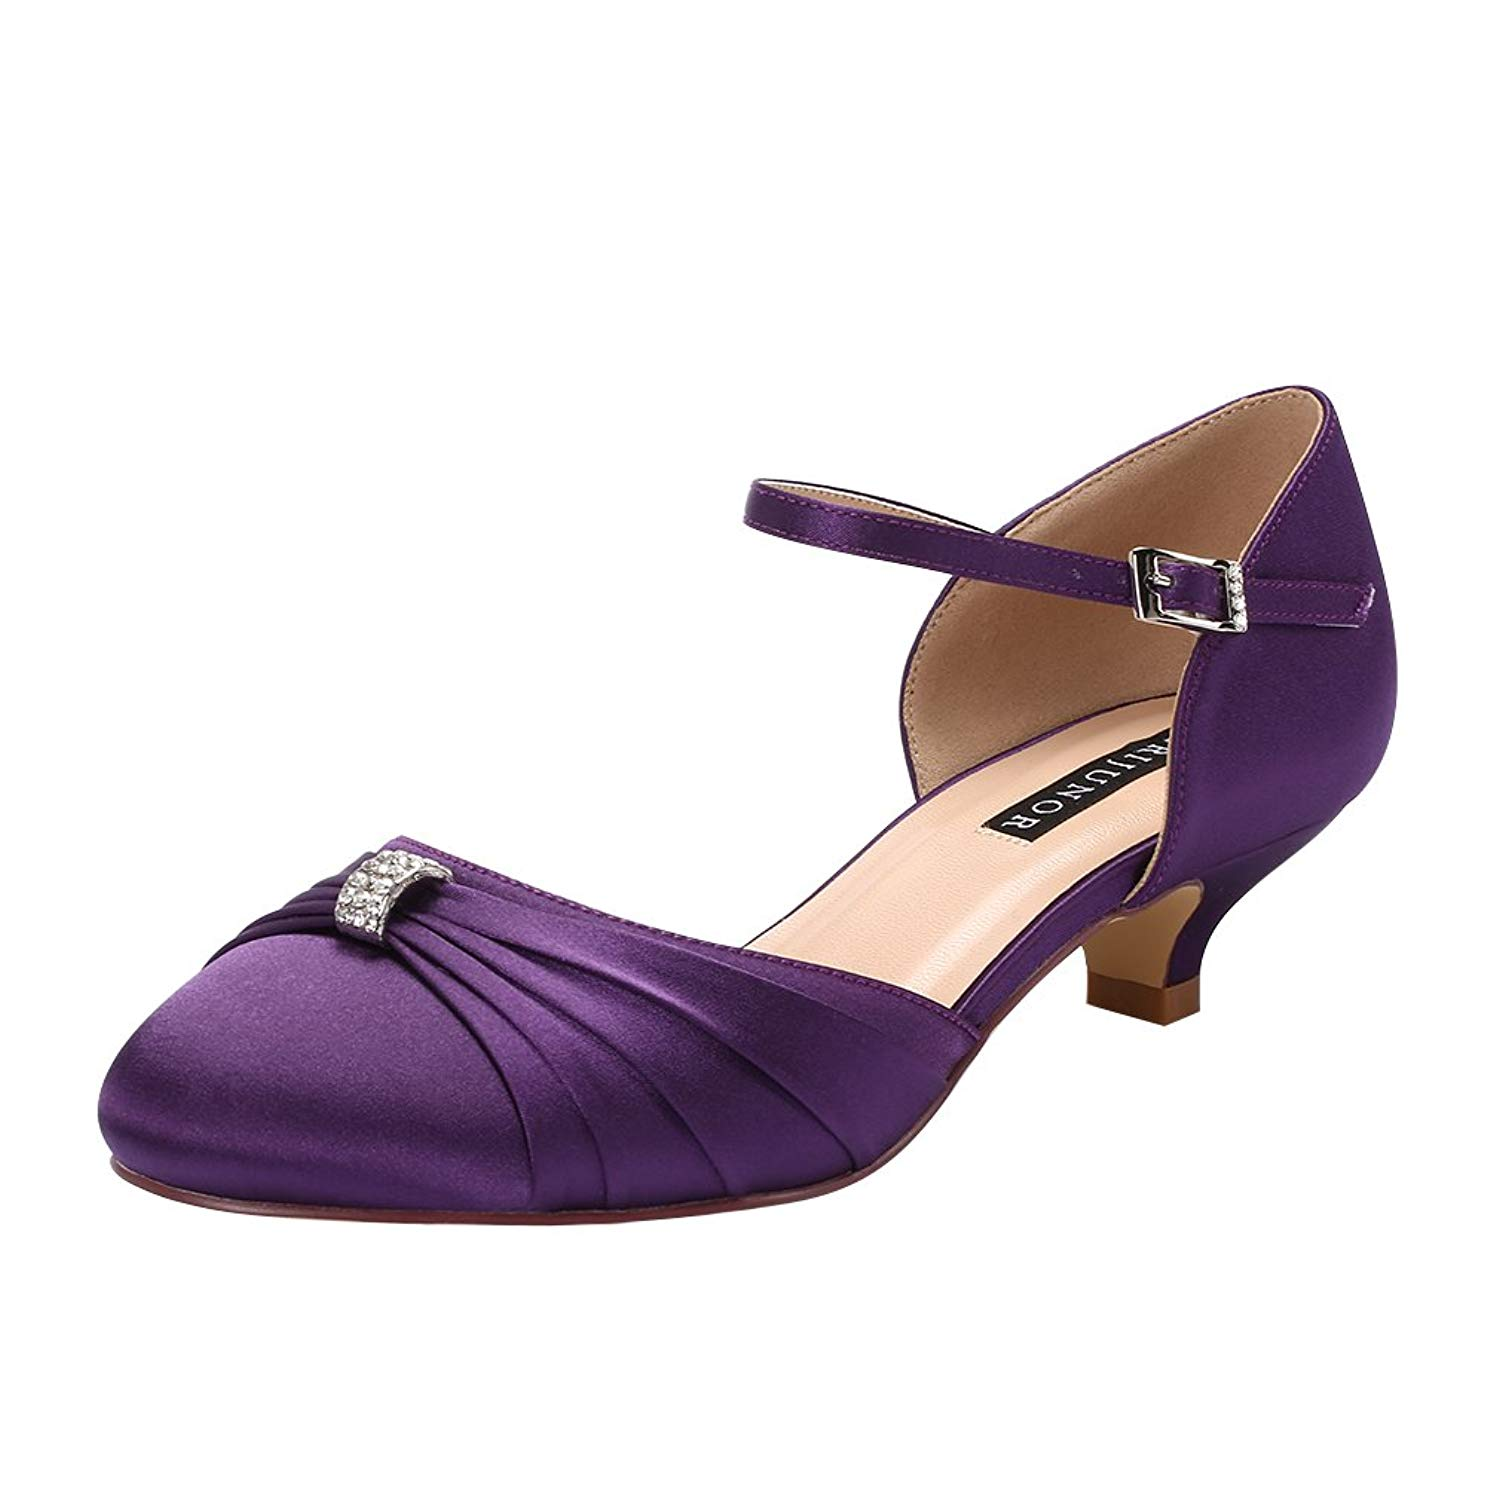 Cheap Satin Dyeable Wedding Shoes, Find Satin Dyeable